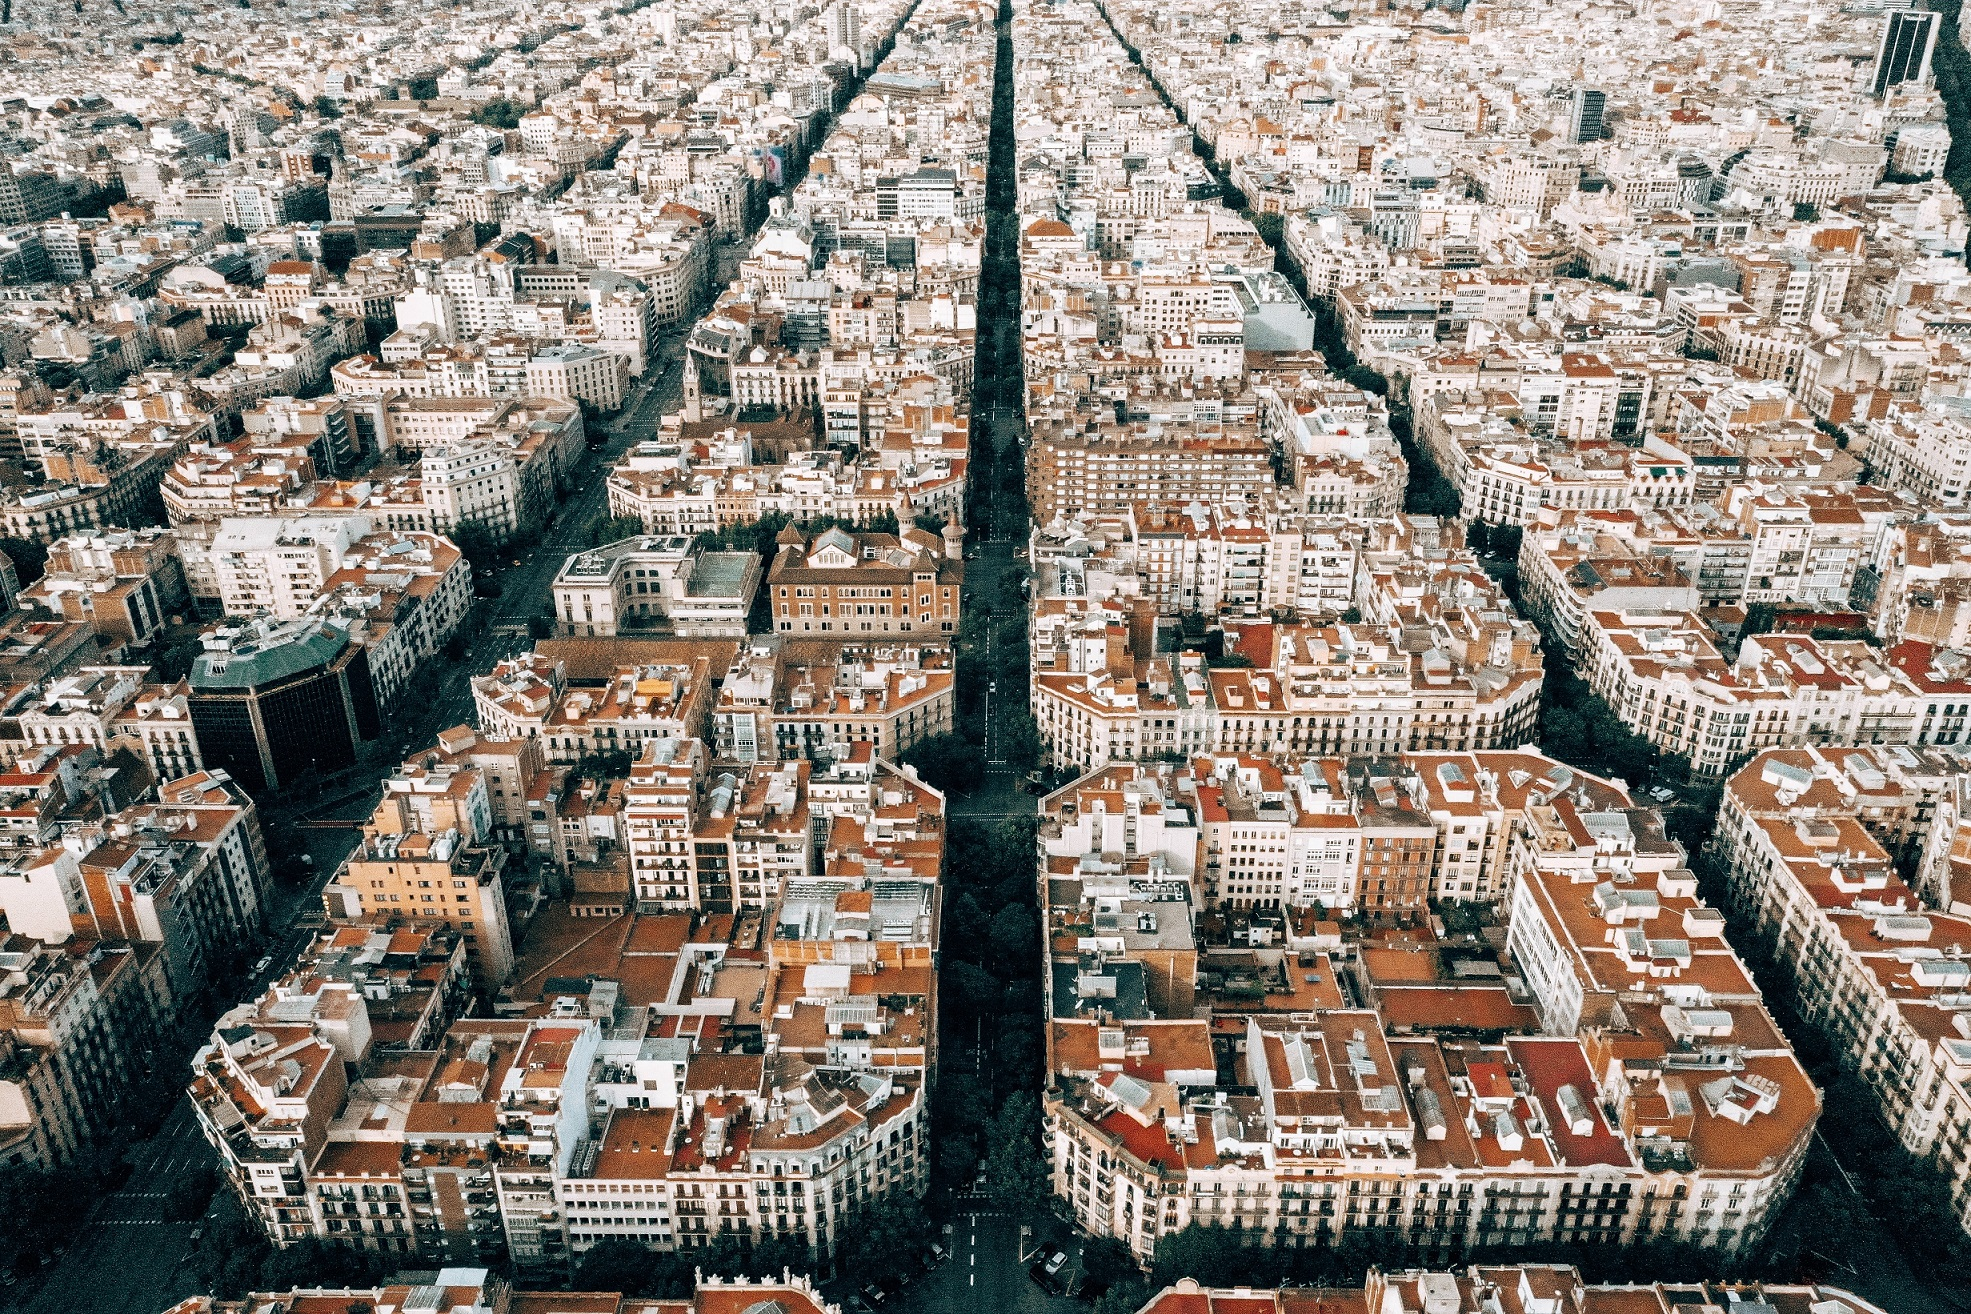 Barcelona forces companies to rent our their empty apartments in Barcelona as affordable housing policy